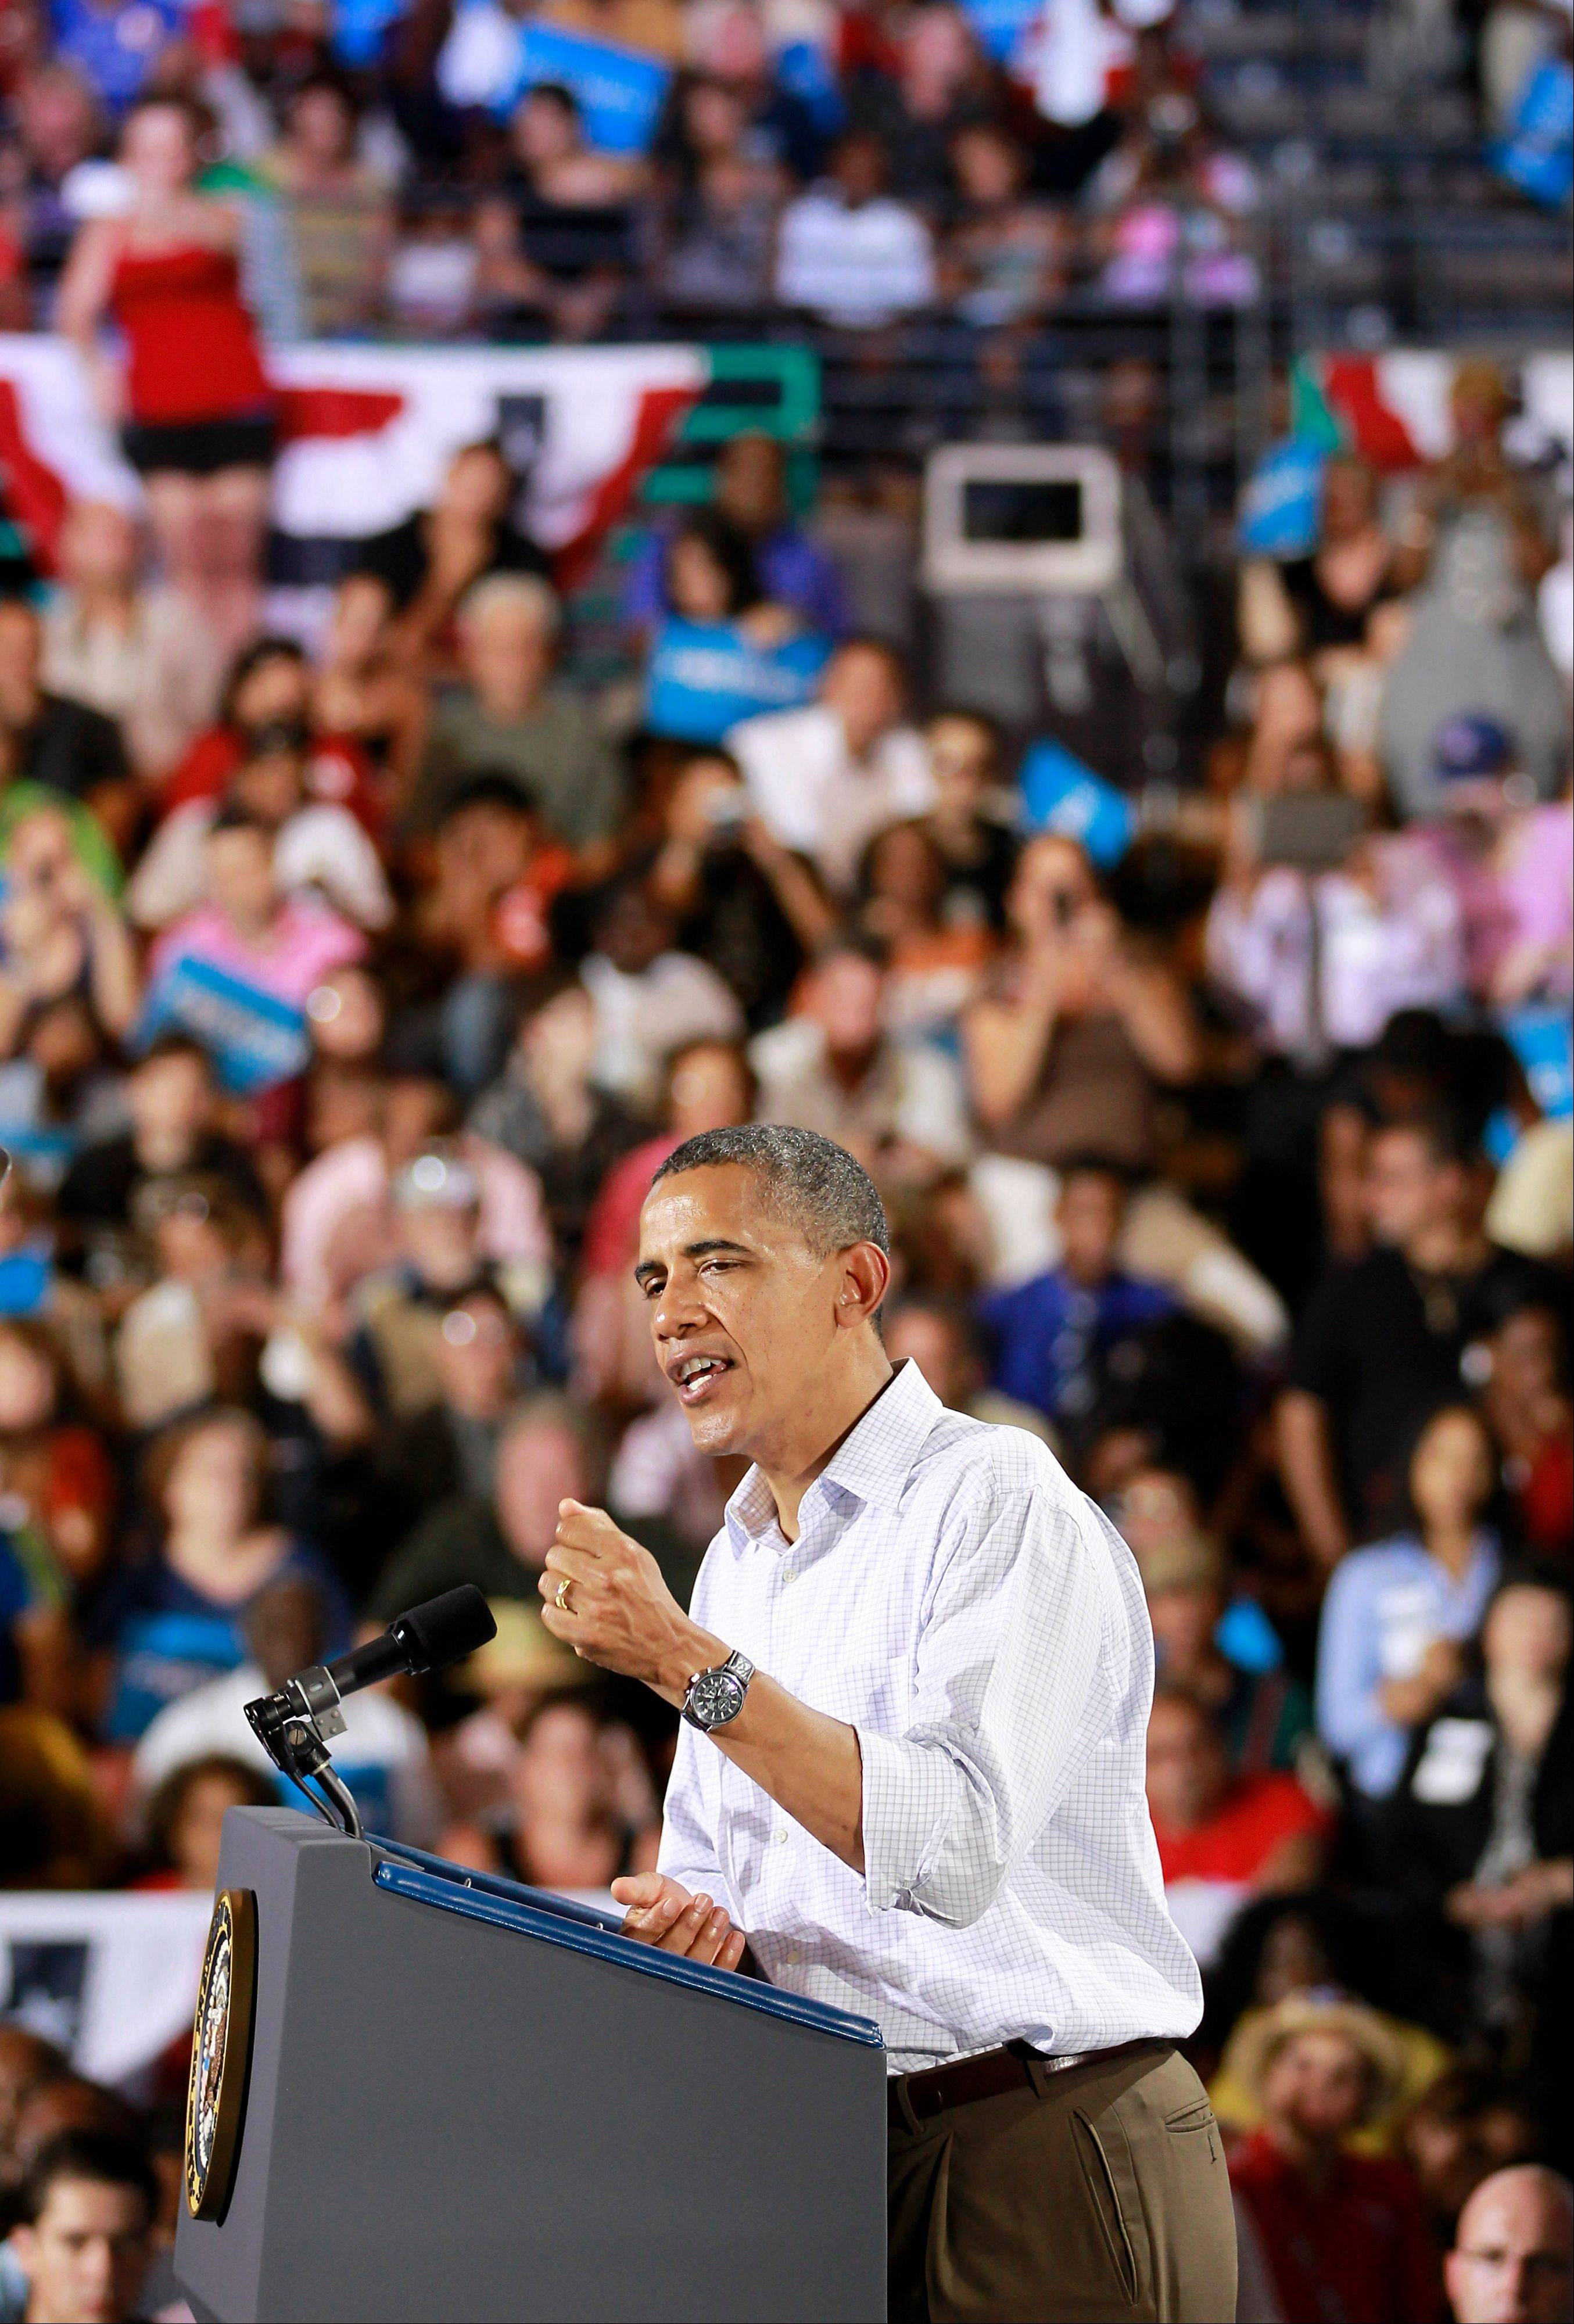 President Barack Obama speaks at a campaign event Saturday in Kissimmee, Fla.